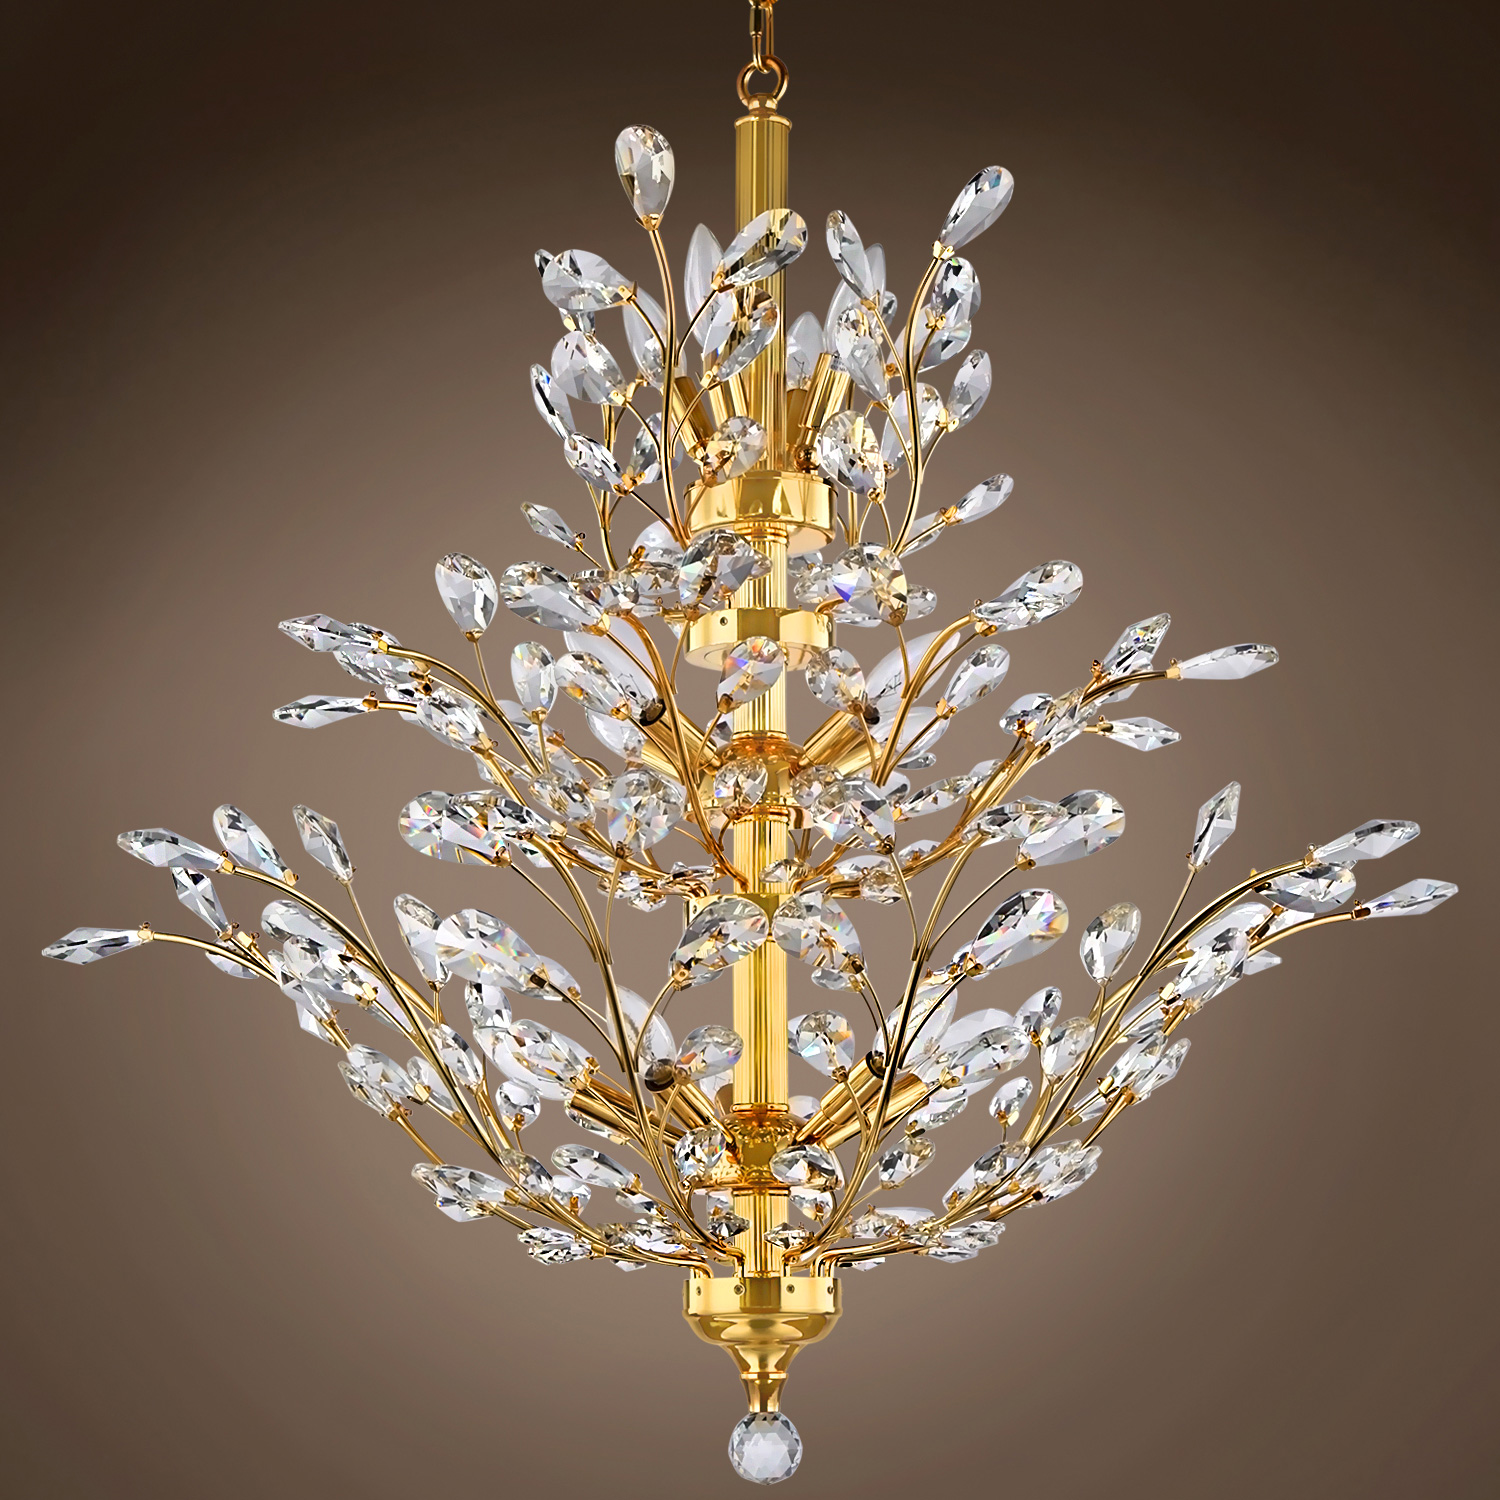 Joshua Marshal 700861 Branch Of Light 10 Light Gold